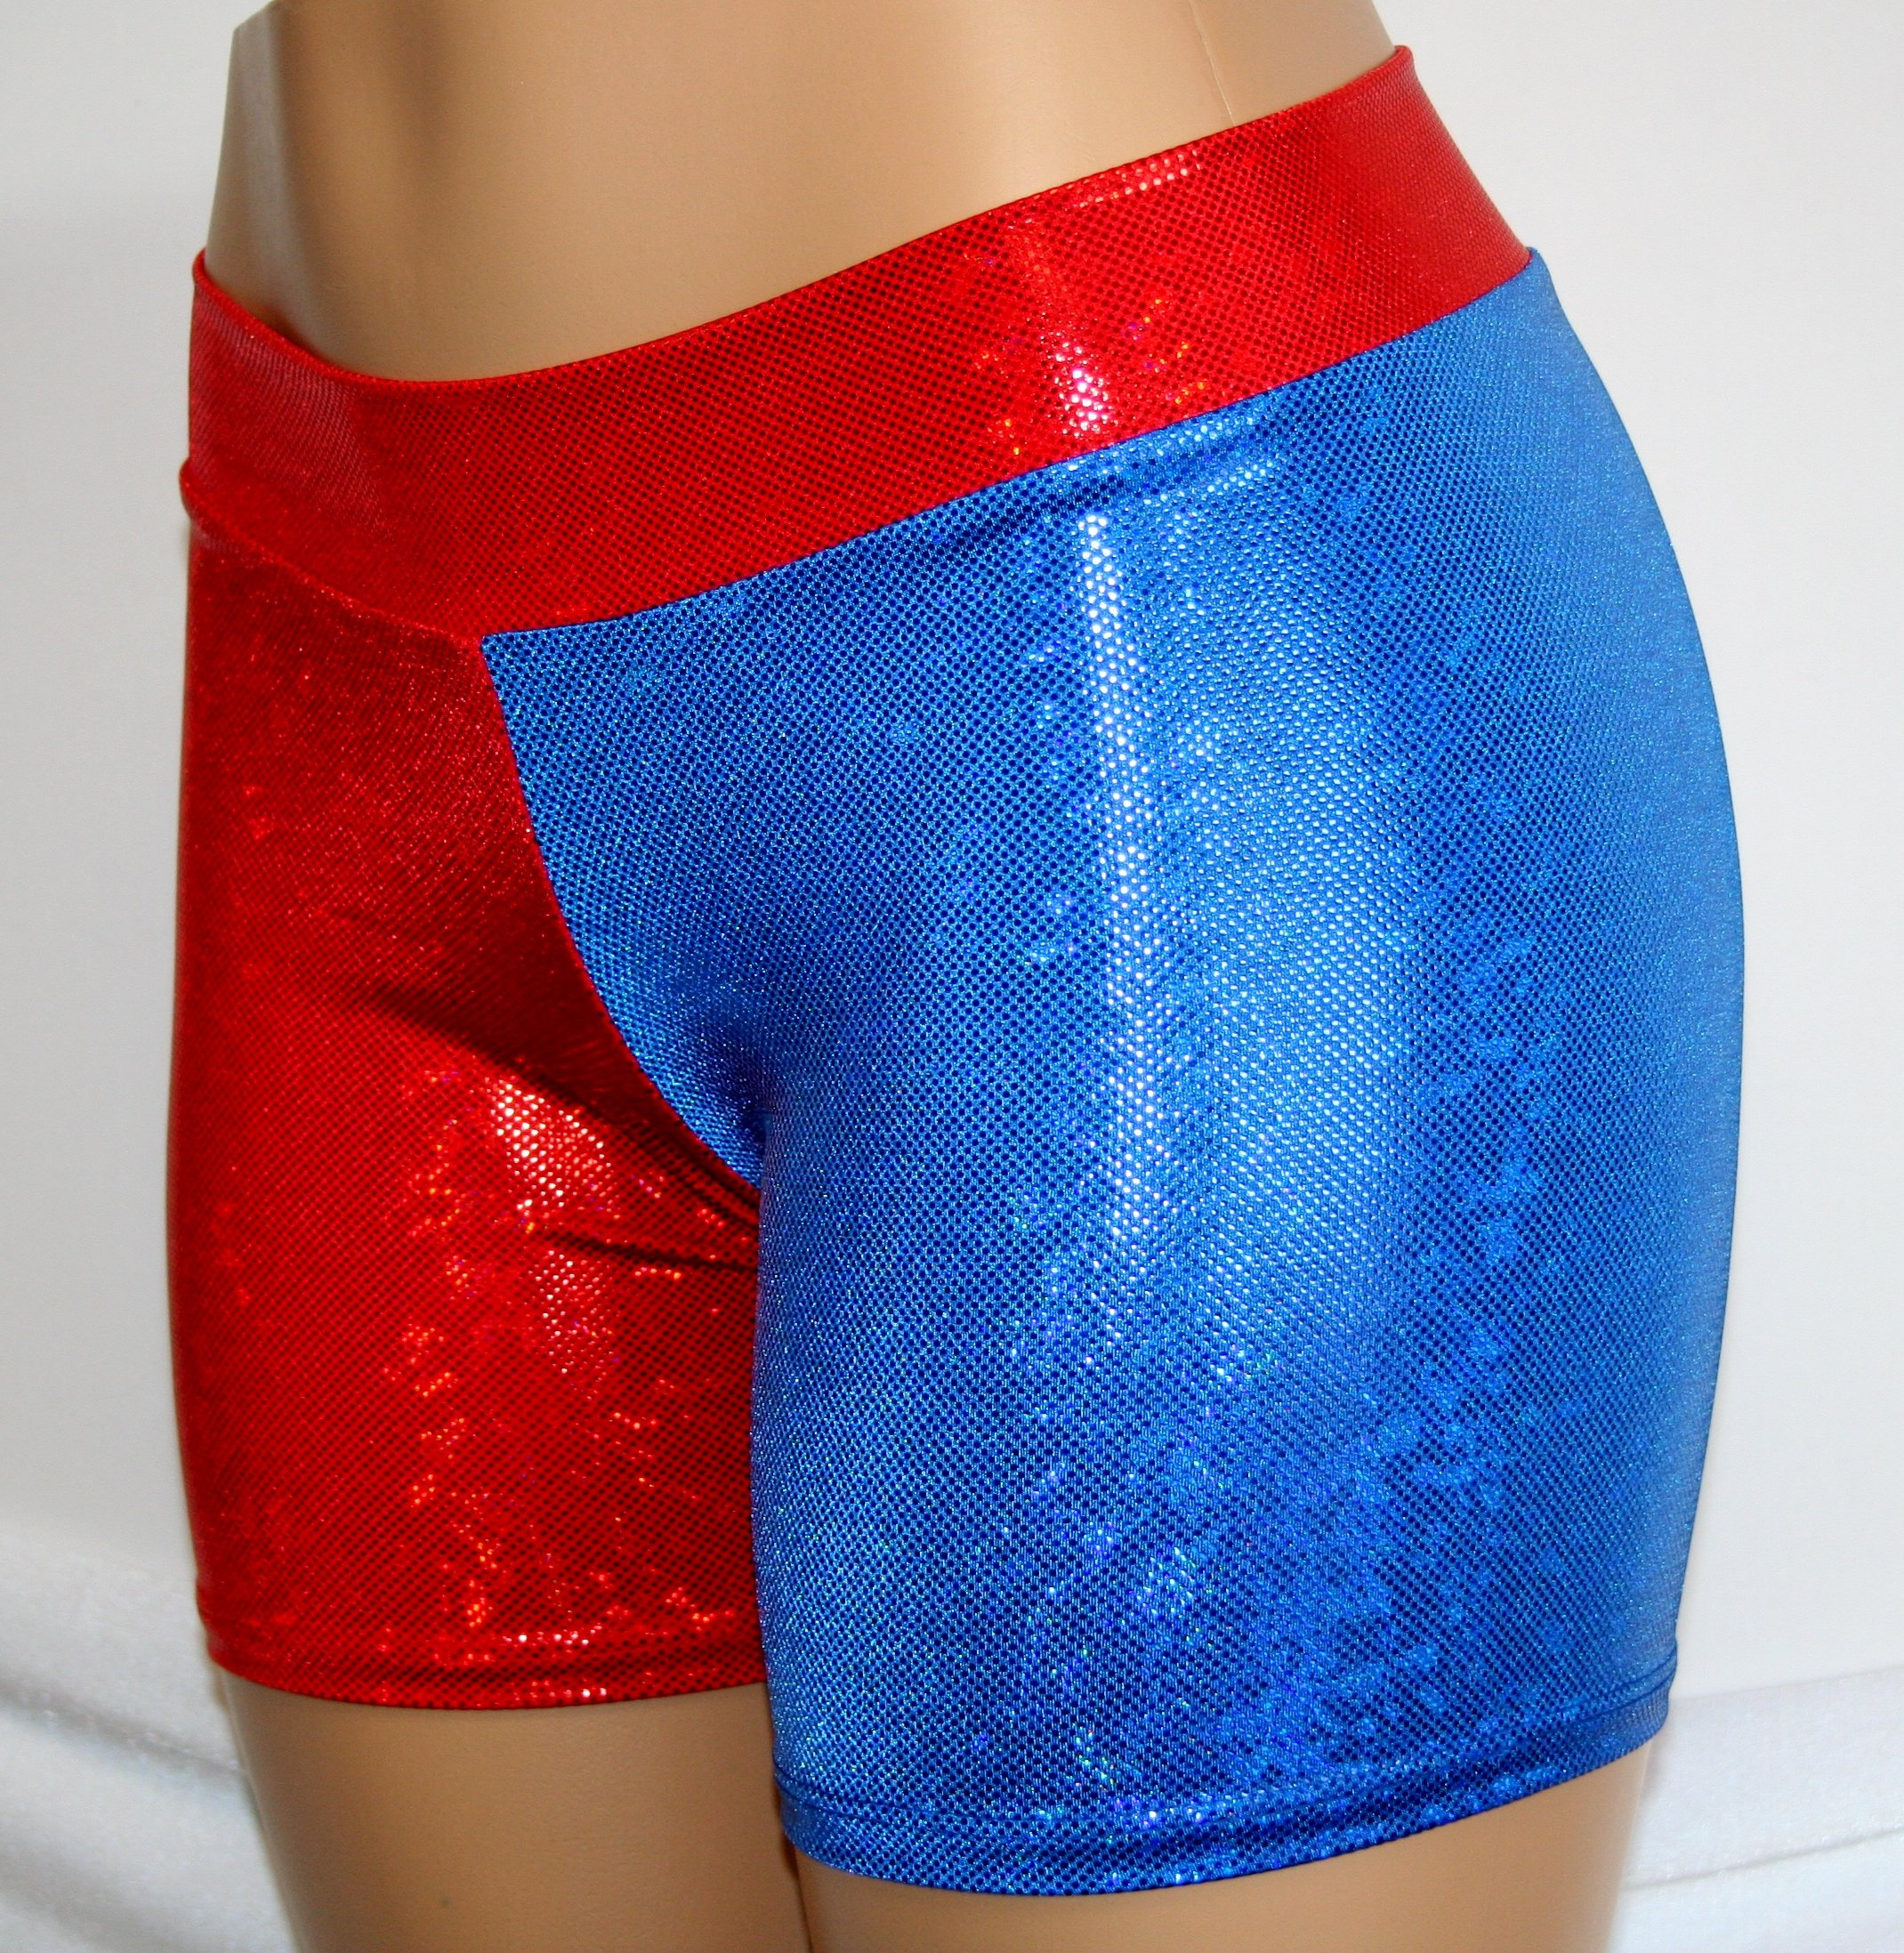 Dilly Duds Children's Red and Blue Holographic Spandex Shorts (X-Small, Red Blue) by Dilly Duds (Image #5)